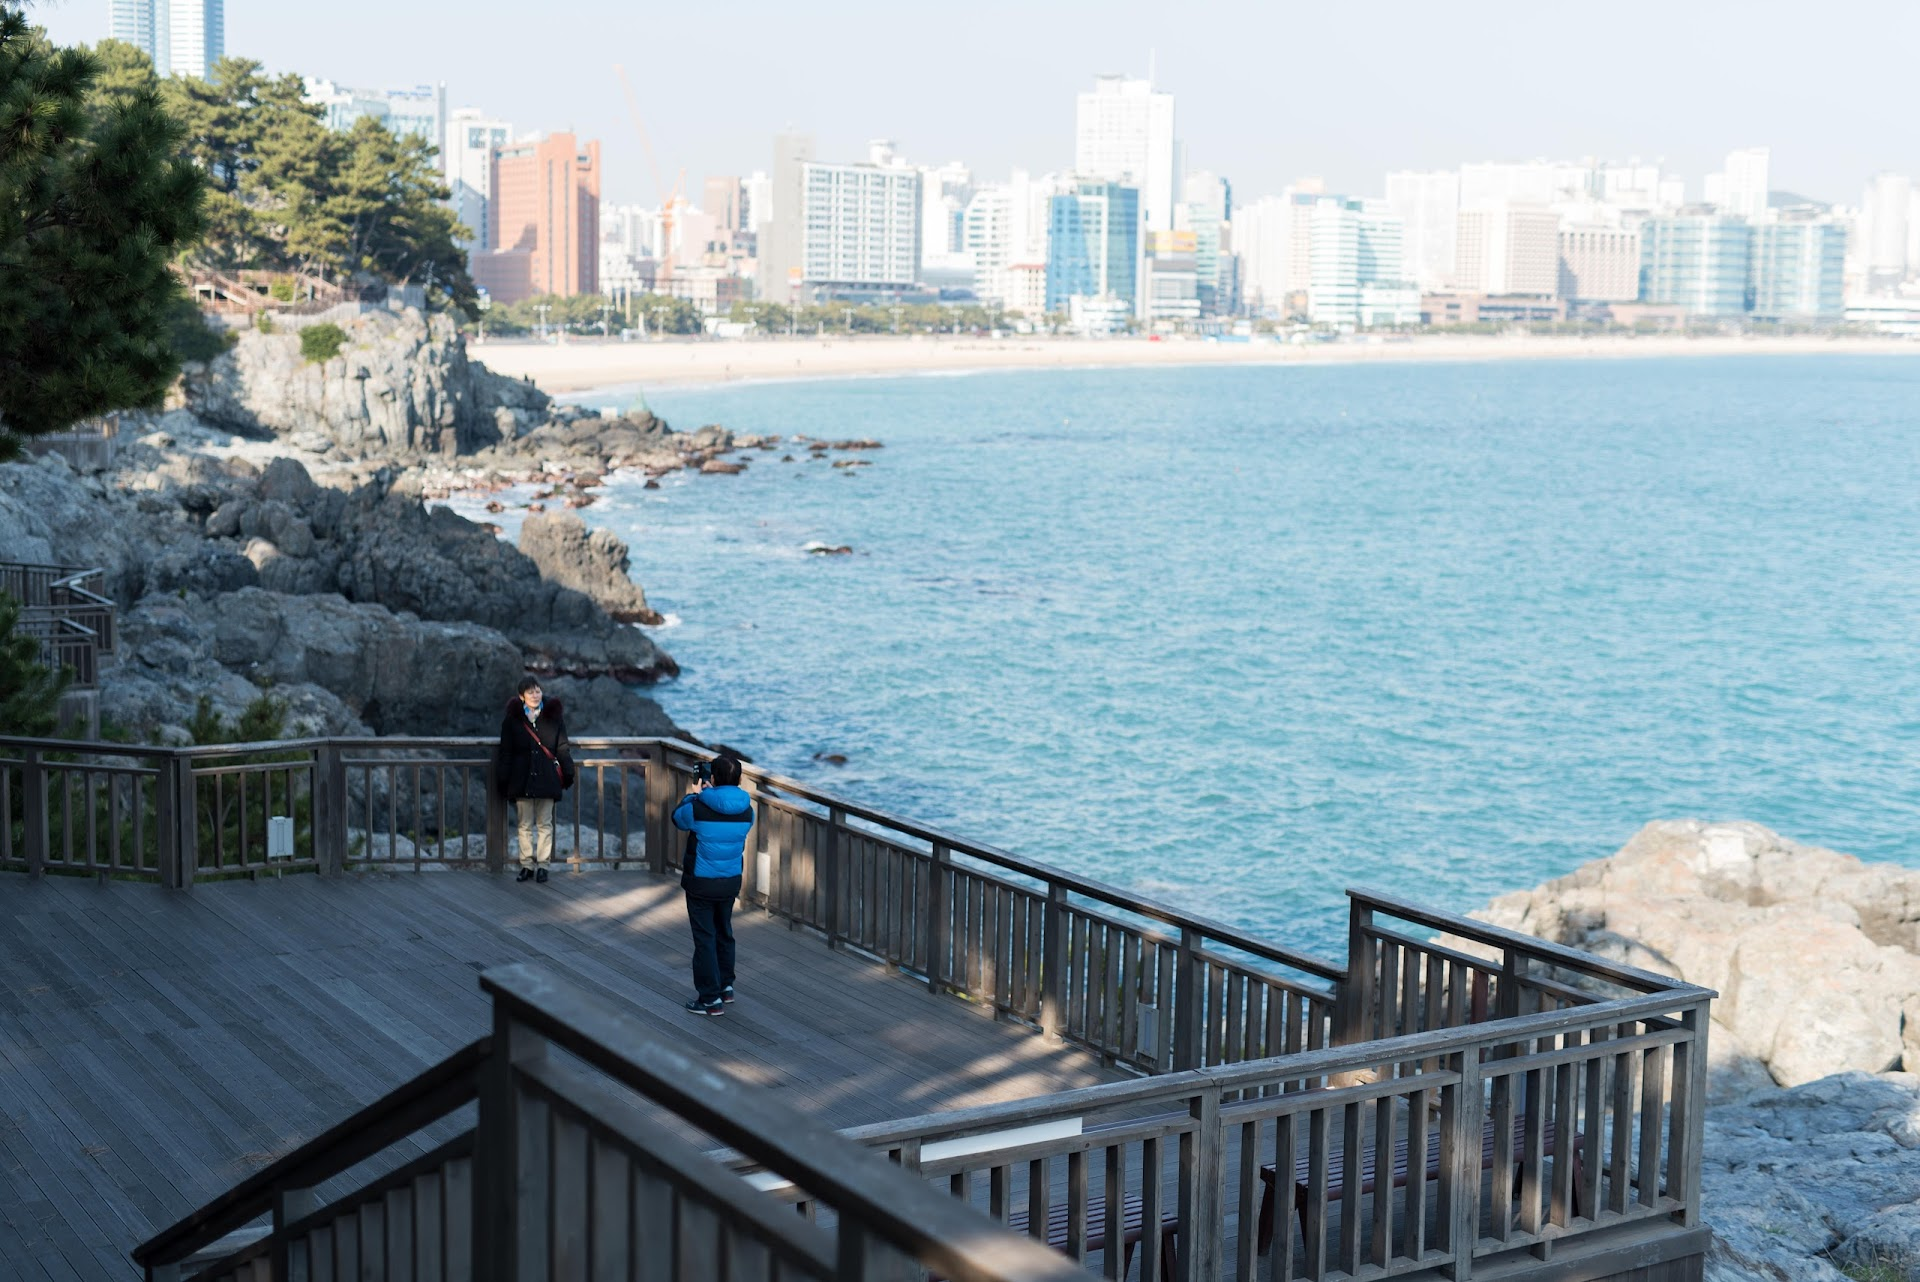 busan, korea, south korea, travel blog, tips, what to do, where to go, beach, tour, ideas, tourist, ocean, things to do, south, korean blogger, haeundae in winter, march, immigrant, best beaches, sea cliff,